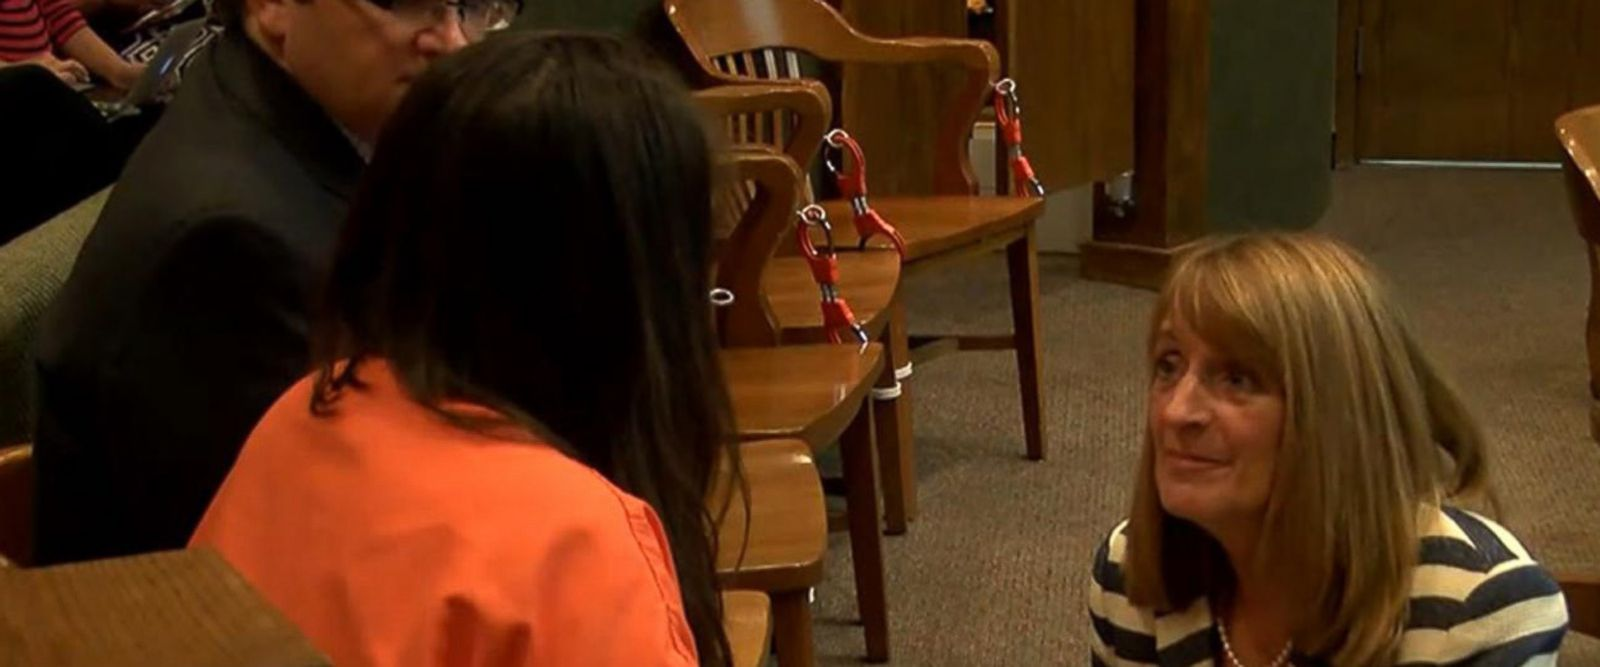 VIDEO: Woman convicted of mother's murder granted a new trial: Part 5